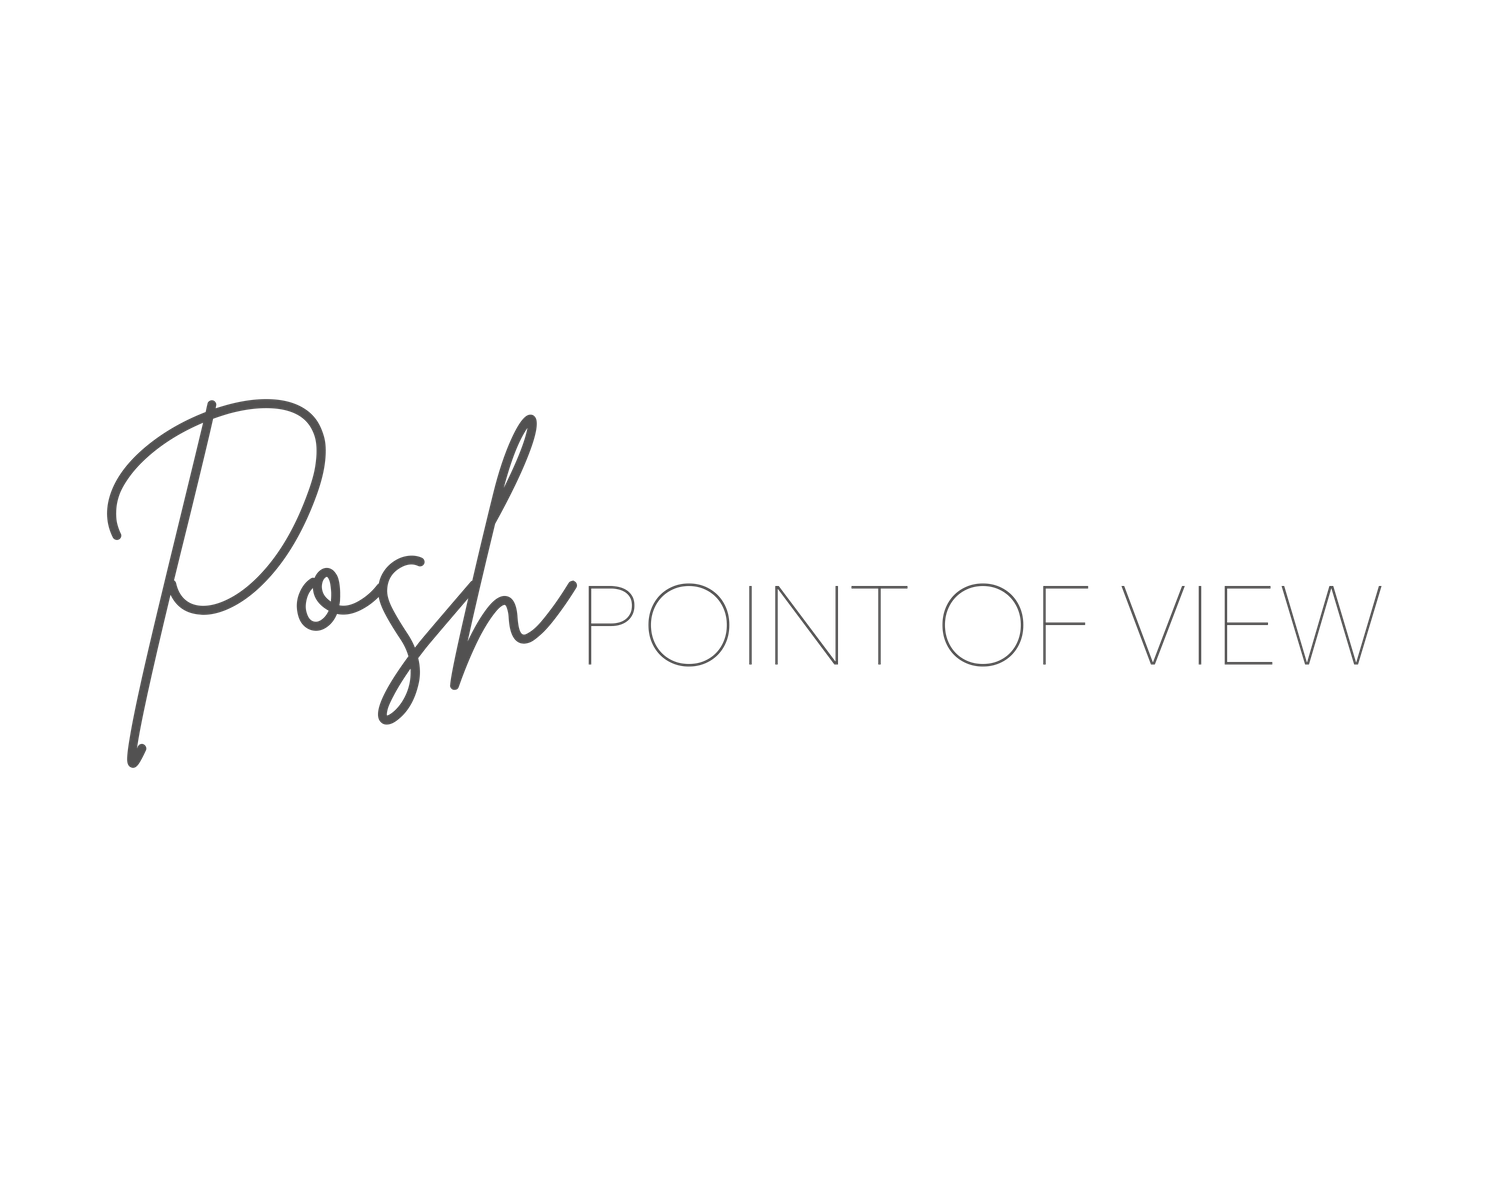 Posh Point of View